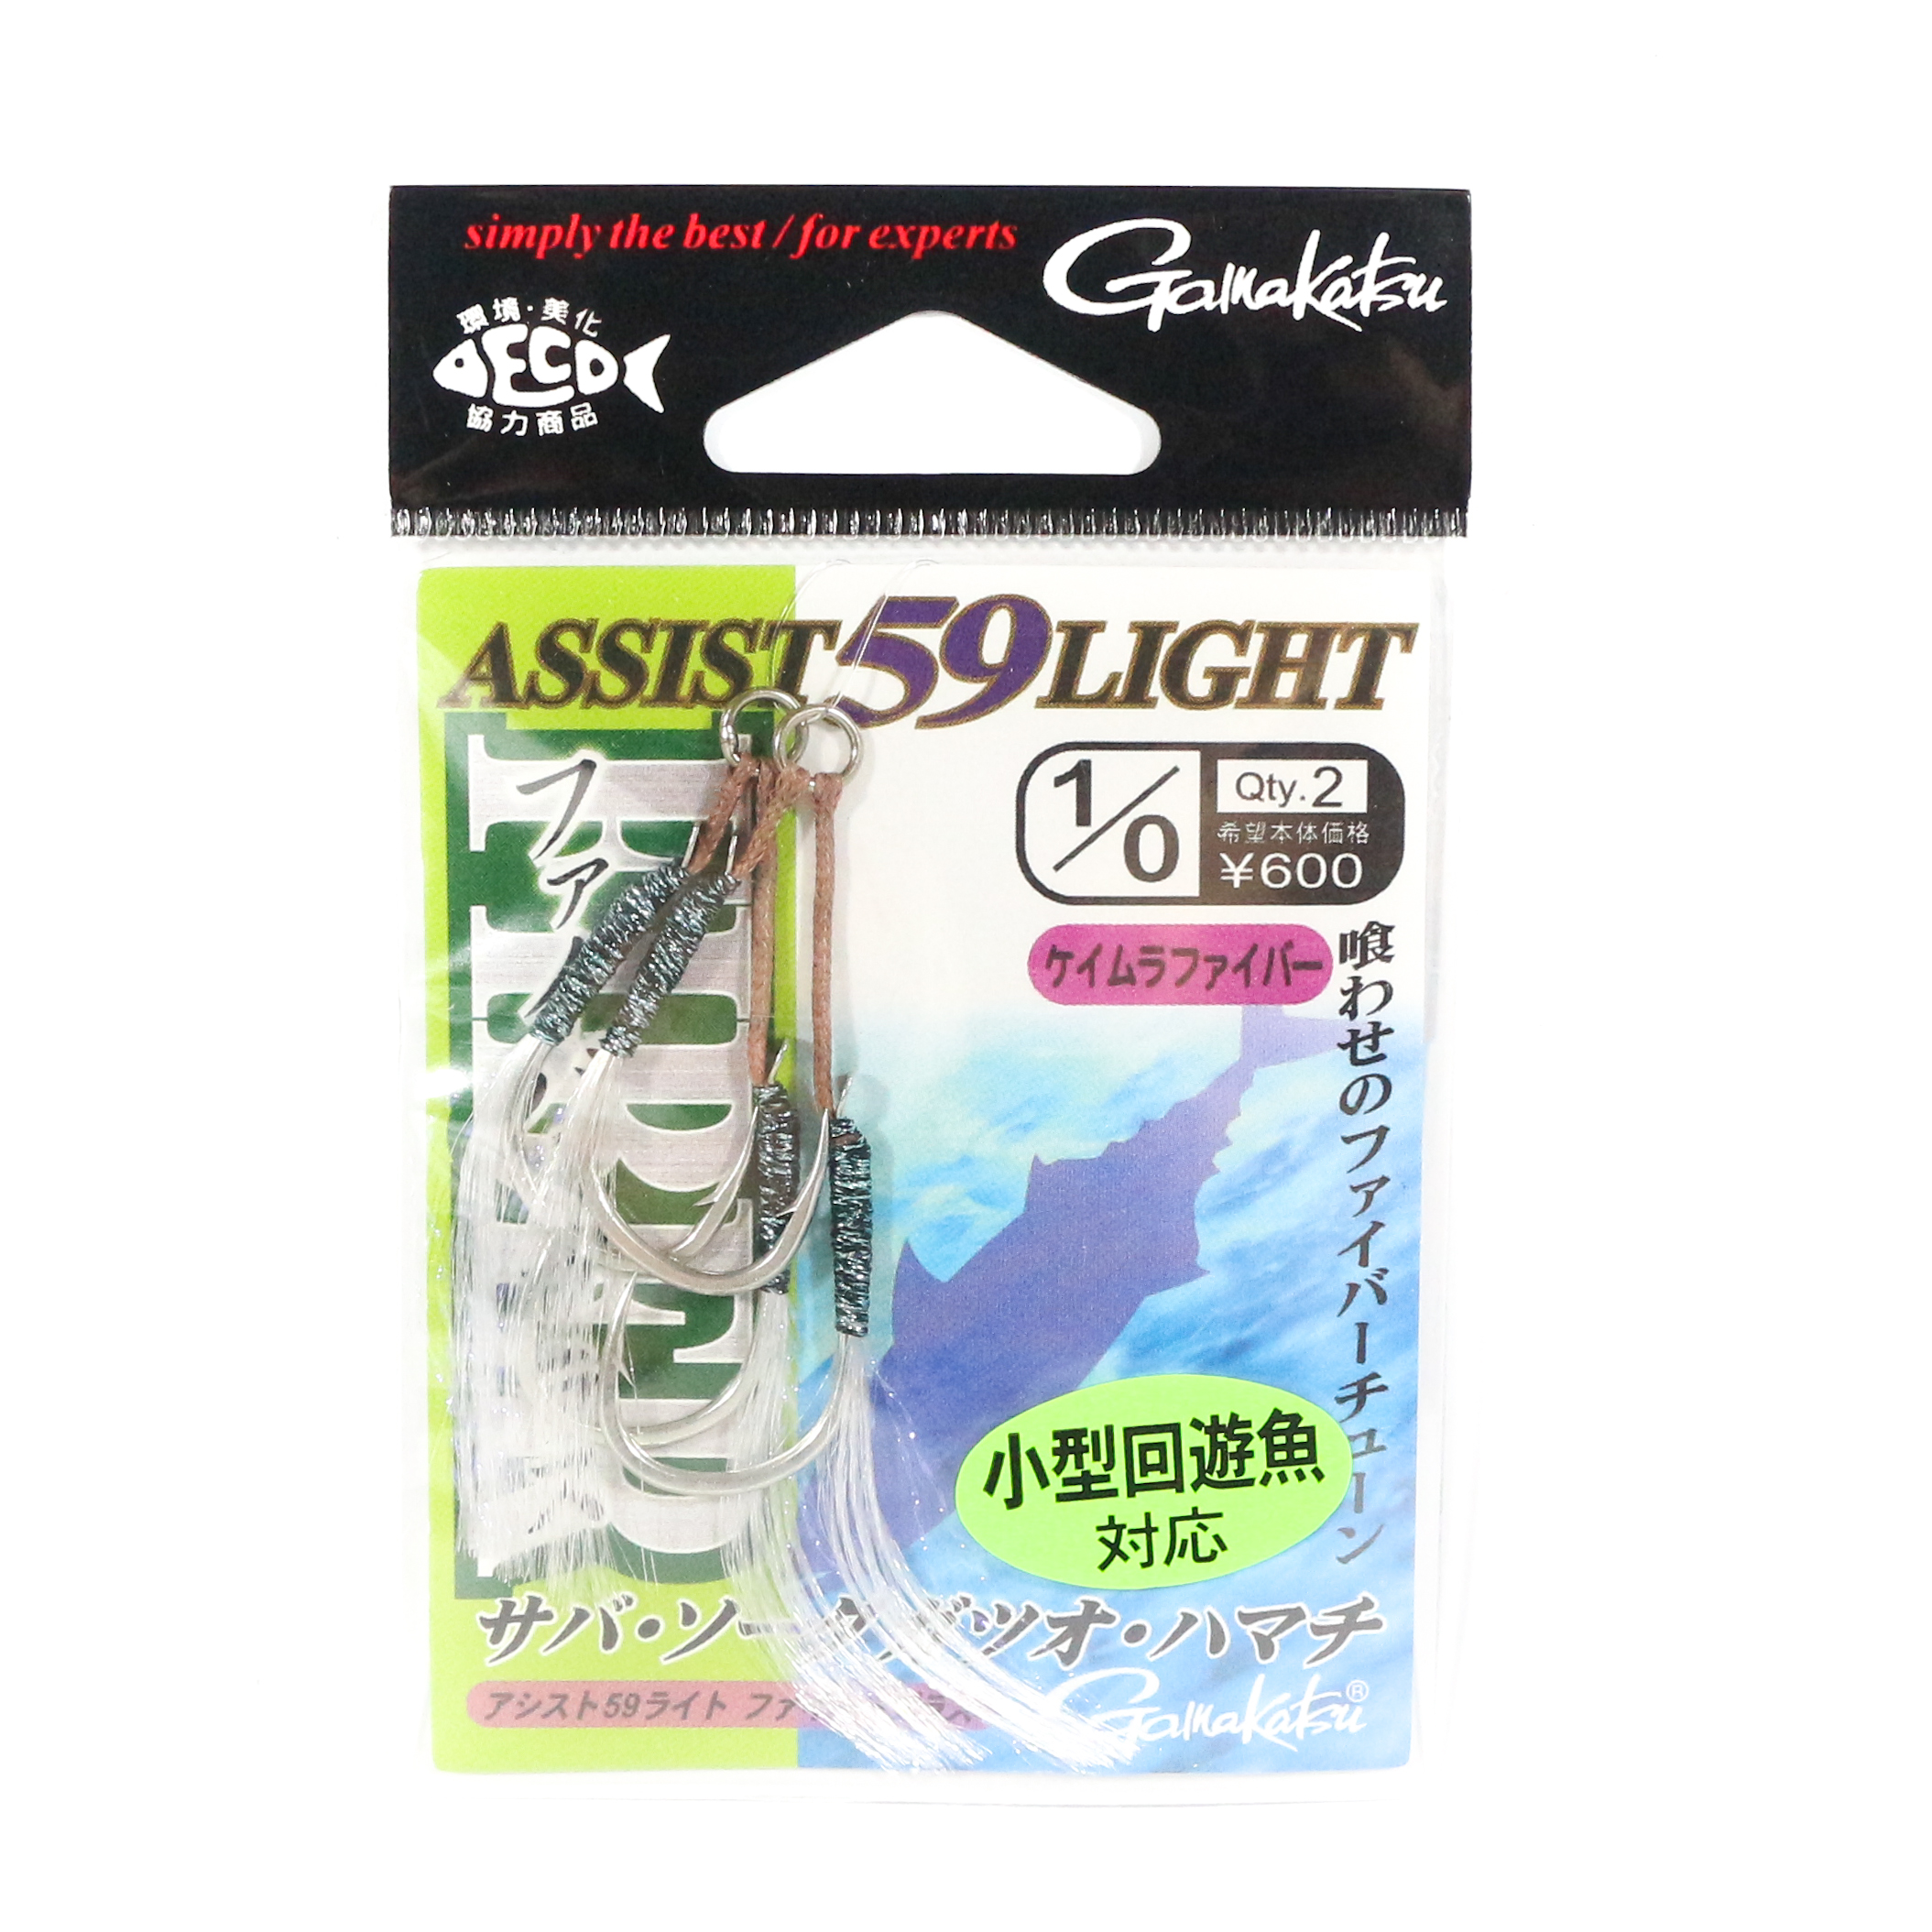 Sale Gamakatsu Assist 59 Light Fibre Plus Hook Size 1/0 ,2 Per pack (1995)